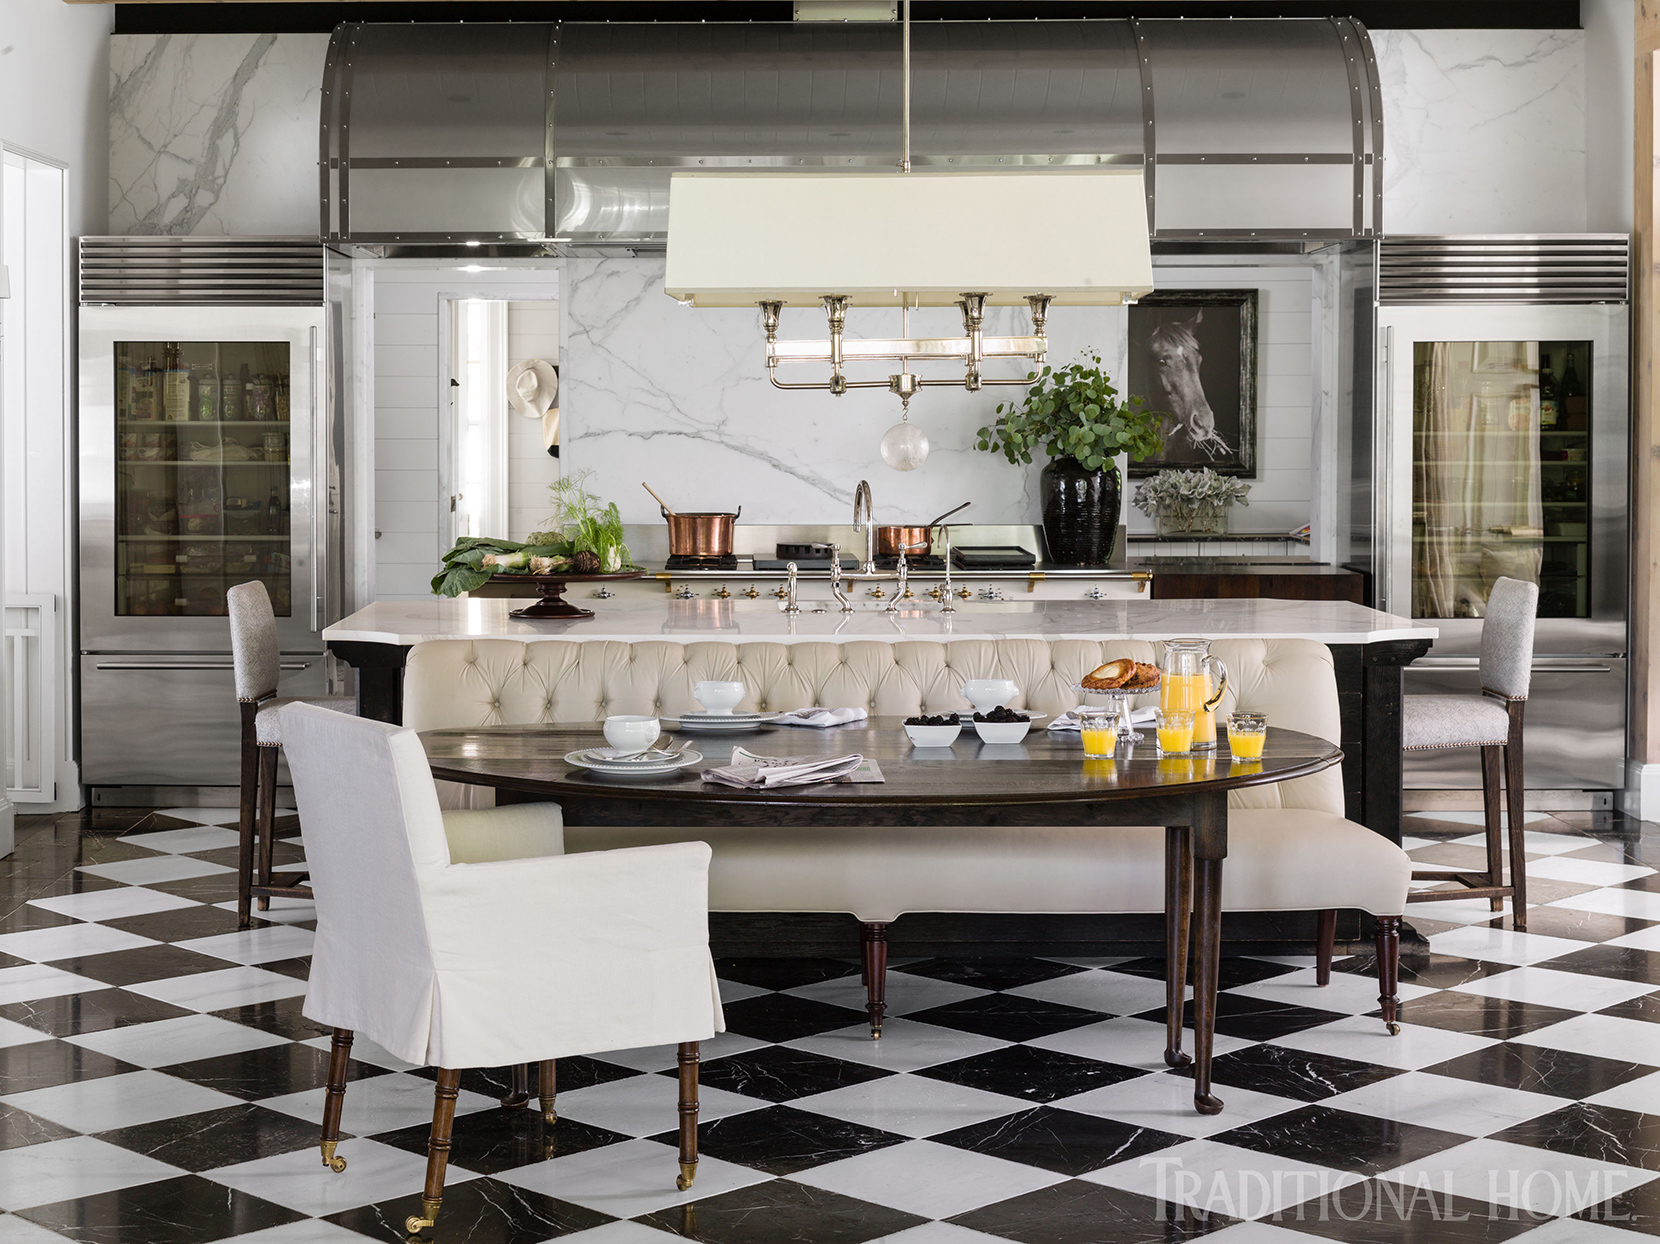 black and white kitchen with checkered floor